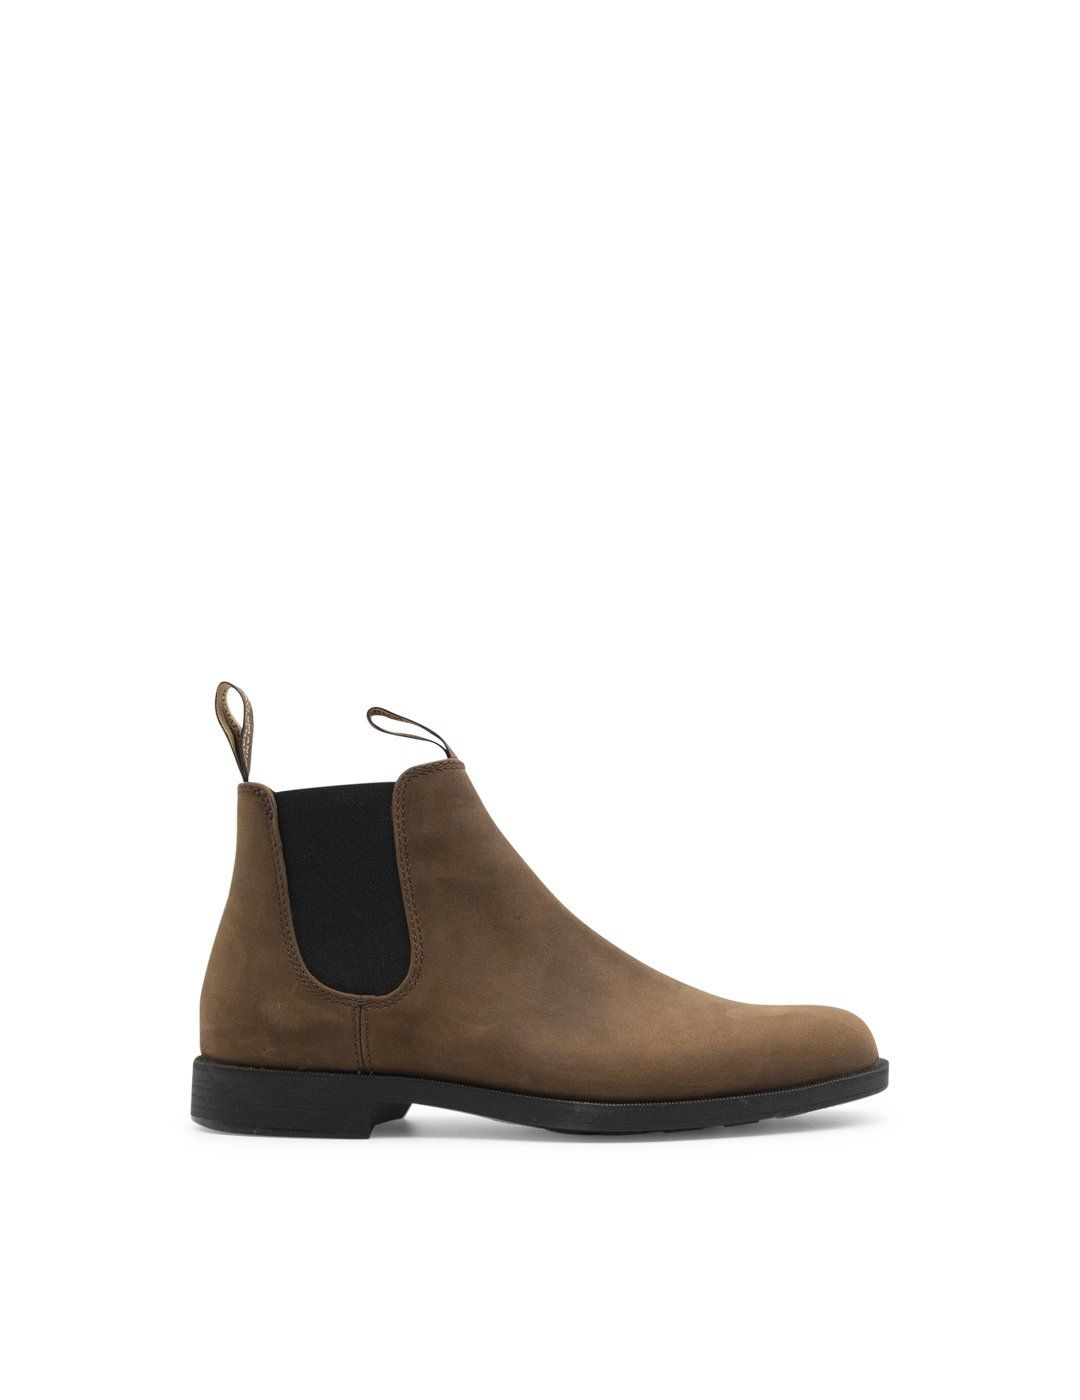 Blundstone Leathers BLUNDSTONE MEN'S 2026BROWN BROWN LEATHER ANKLE BOOTS